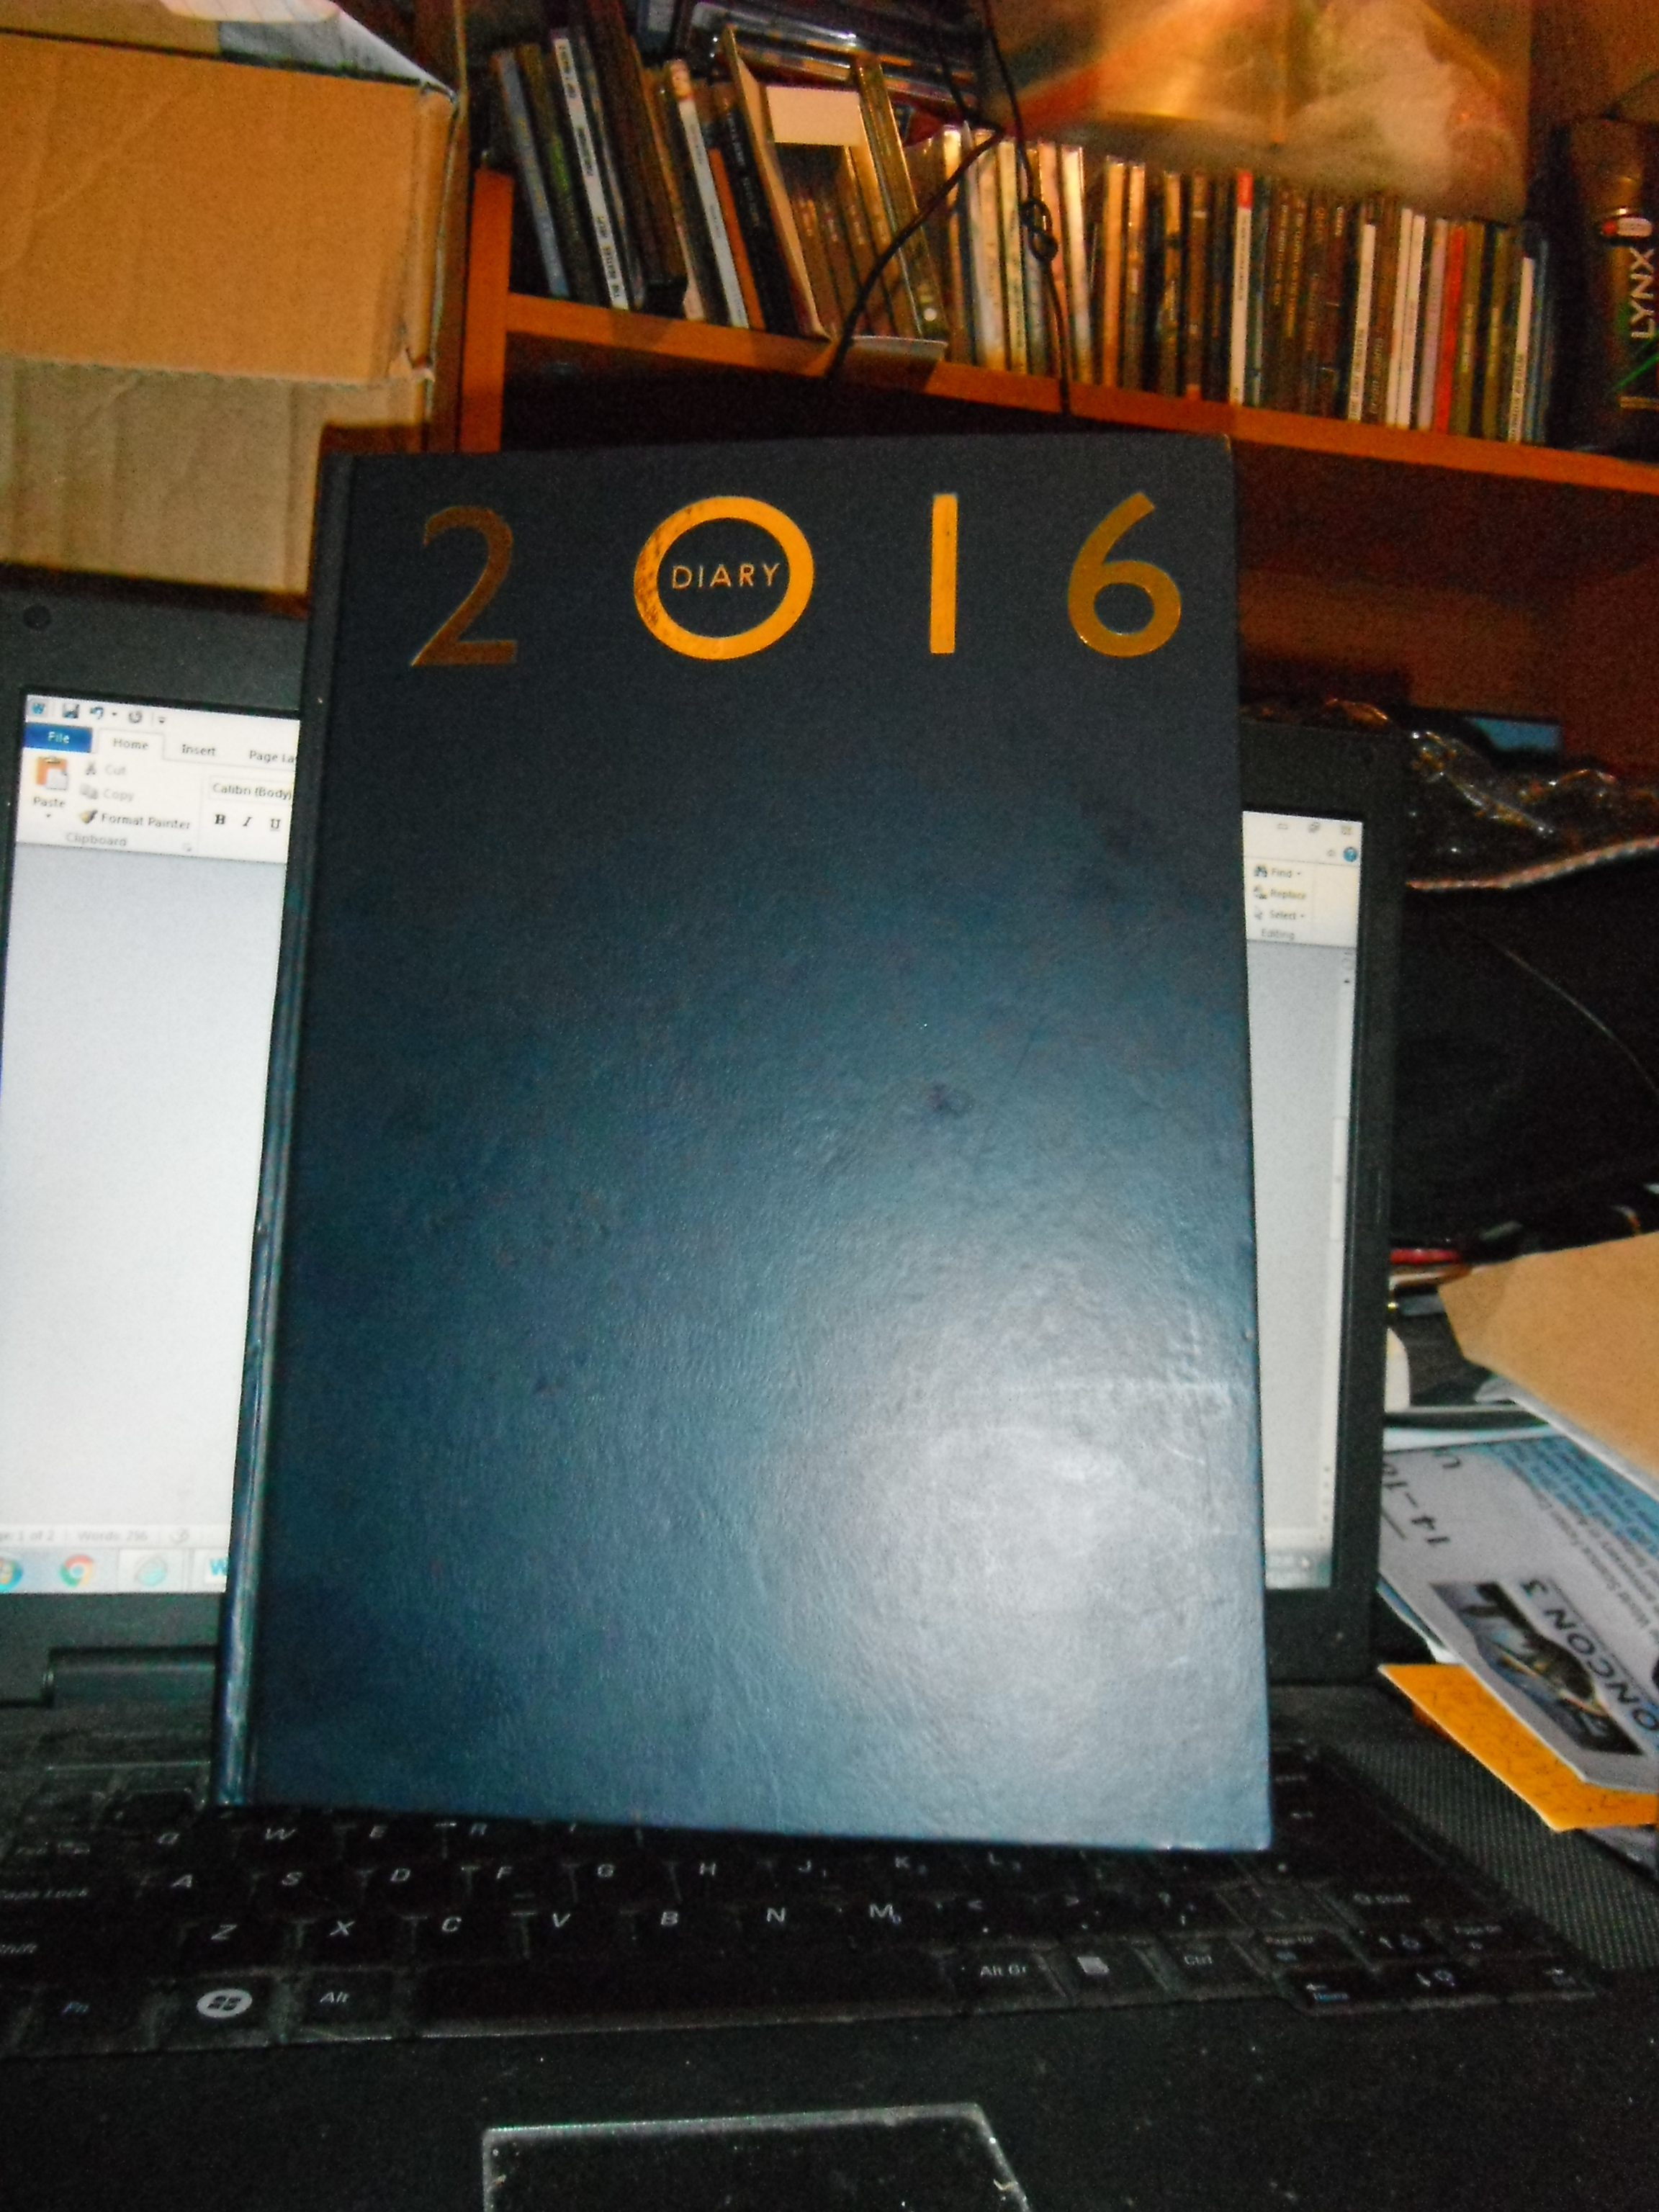 Photo taken by me – my 2016 diary